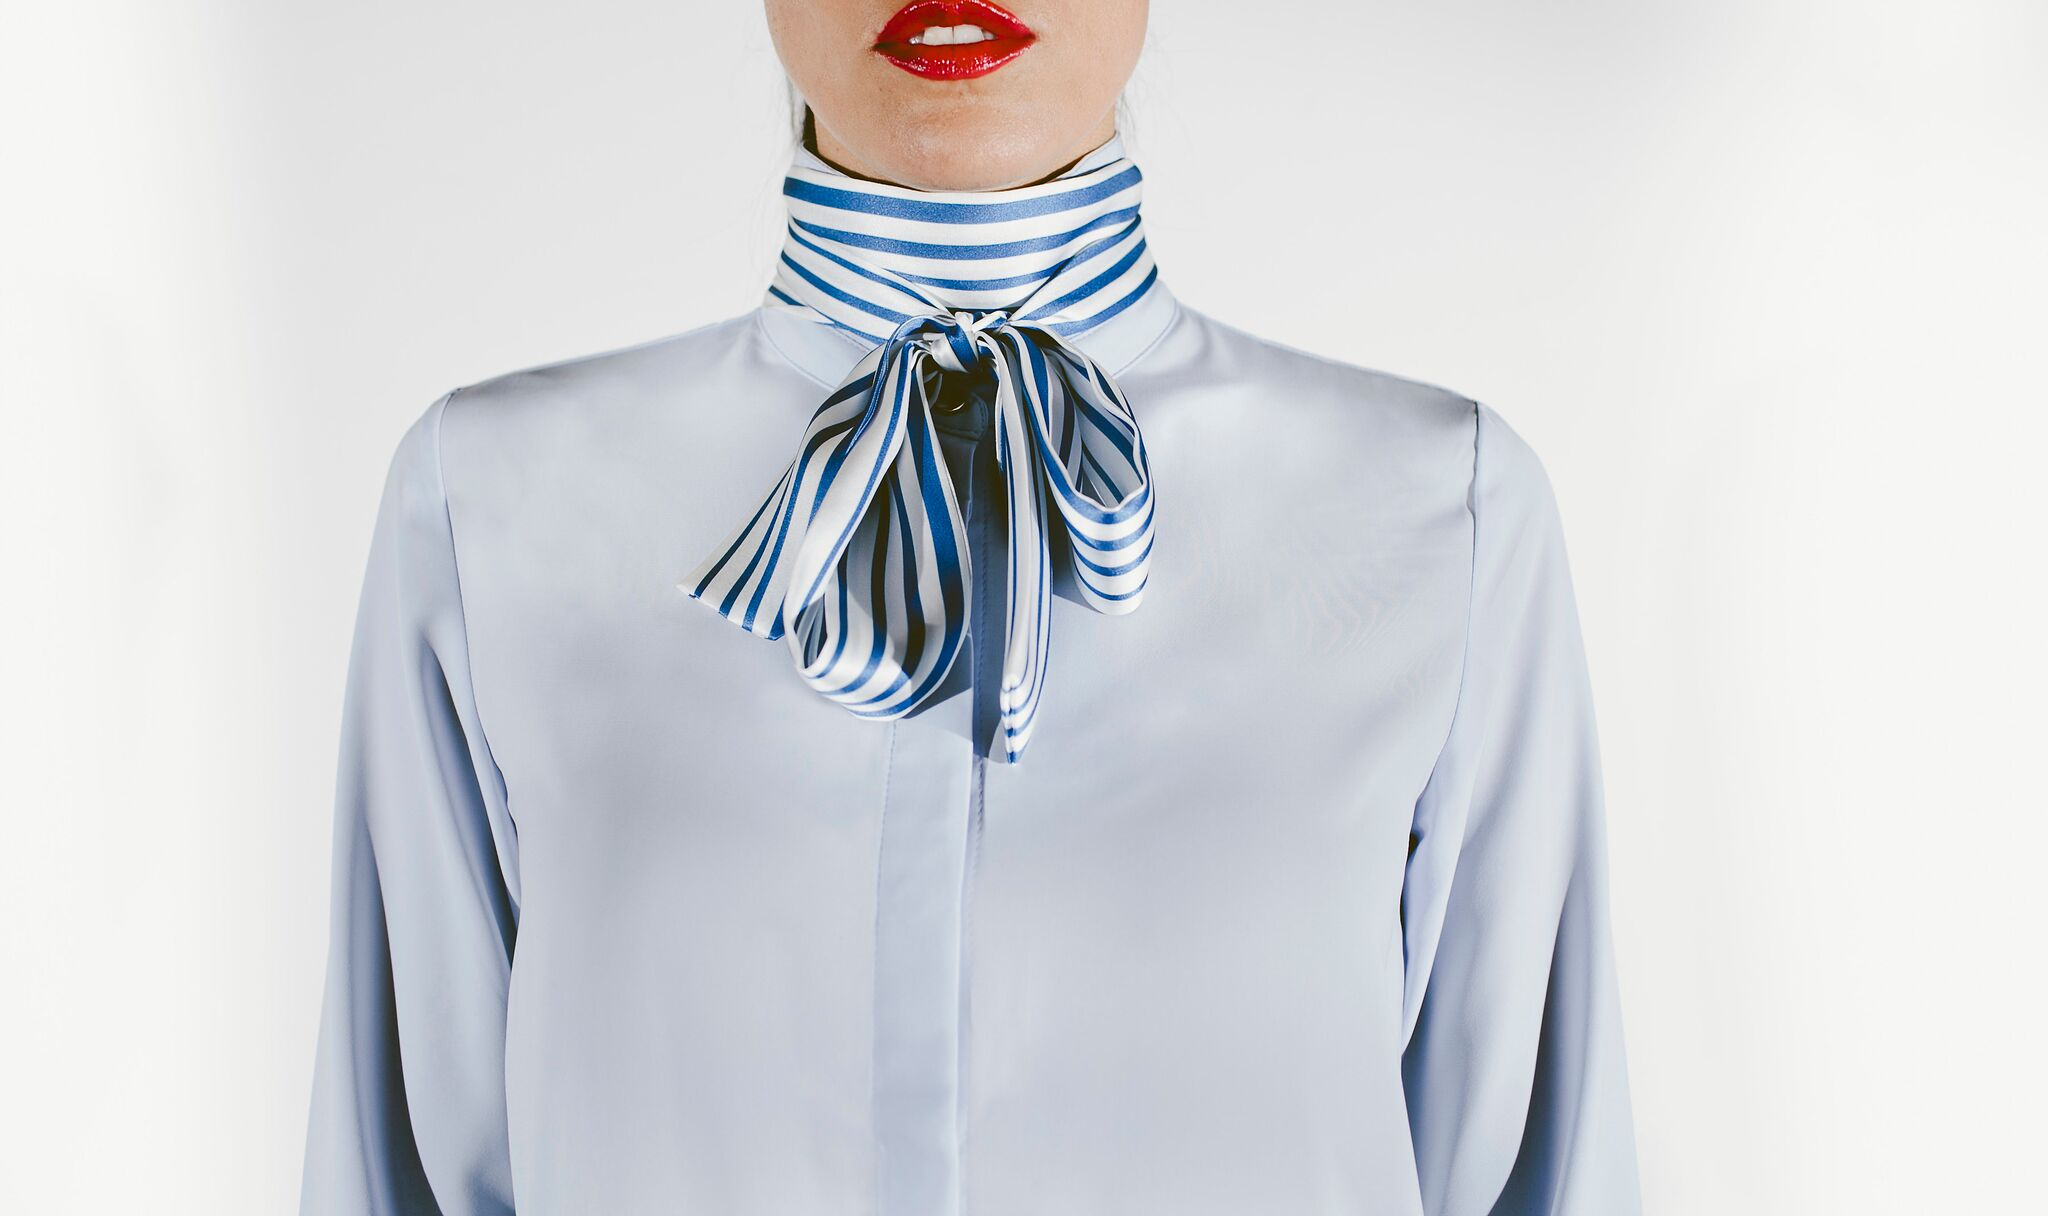 "<p>Necktie: ""The Saint Teresa"". Mother Teresa is a saint amongst the saints. She is a woman admired and respected as one of the greatest humanitarians of the 20th-century. She was a person that made a profound impact on human life and forced people to look at the world with a different eye. (Image @ Elizabeth Zuluaga for andieanderin)</p><p></p>"